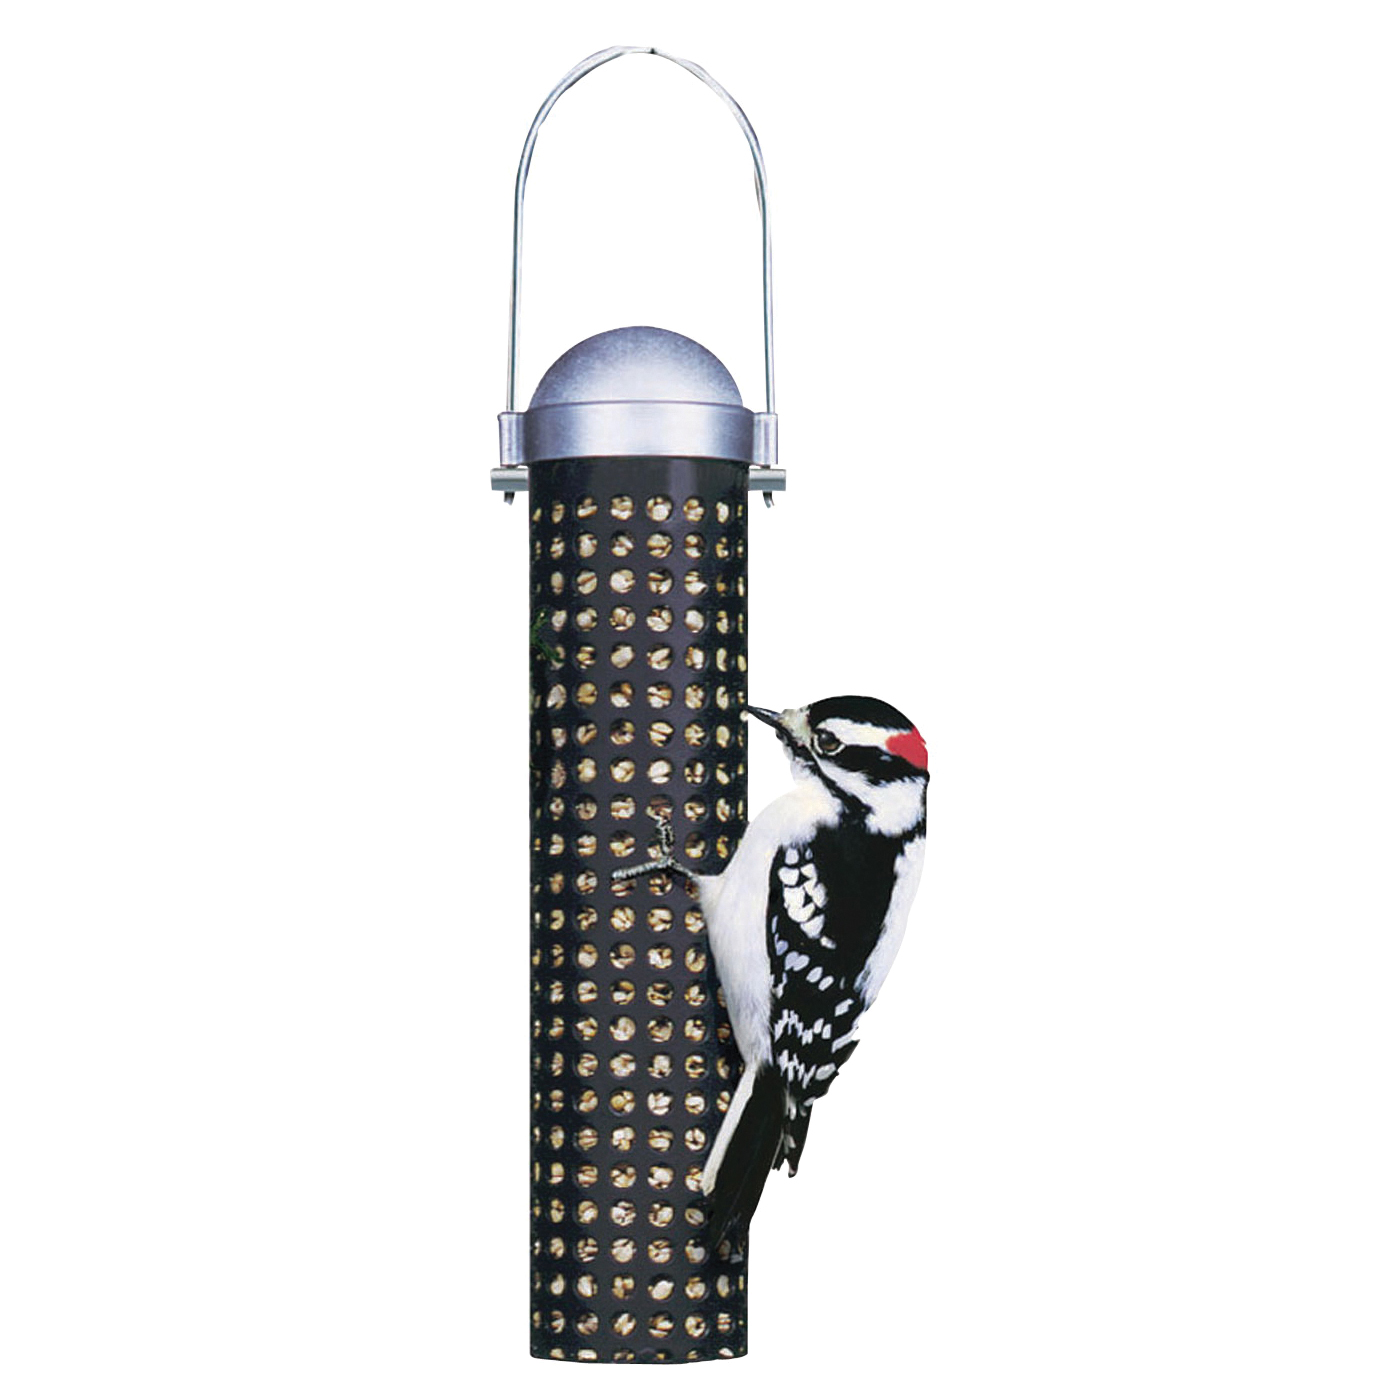 Picture of Perky-Pet 395 Wild Bird Feeder, 10 in H, 1.25 lb, Metal